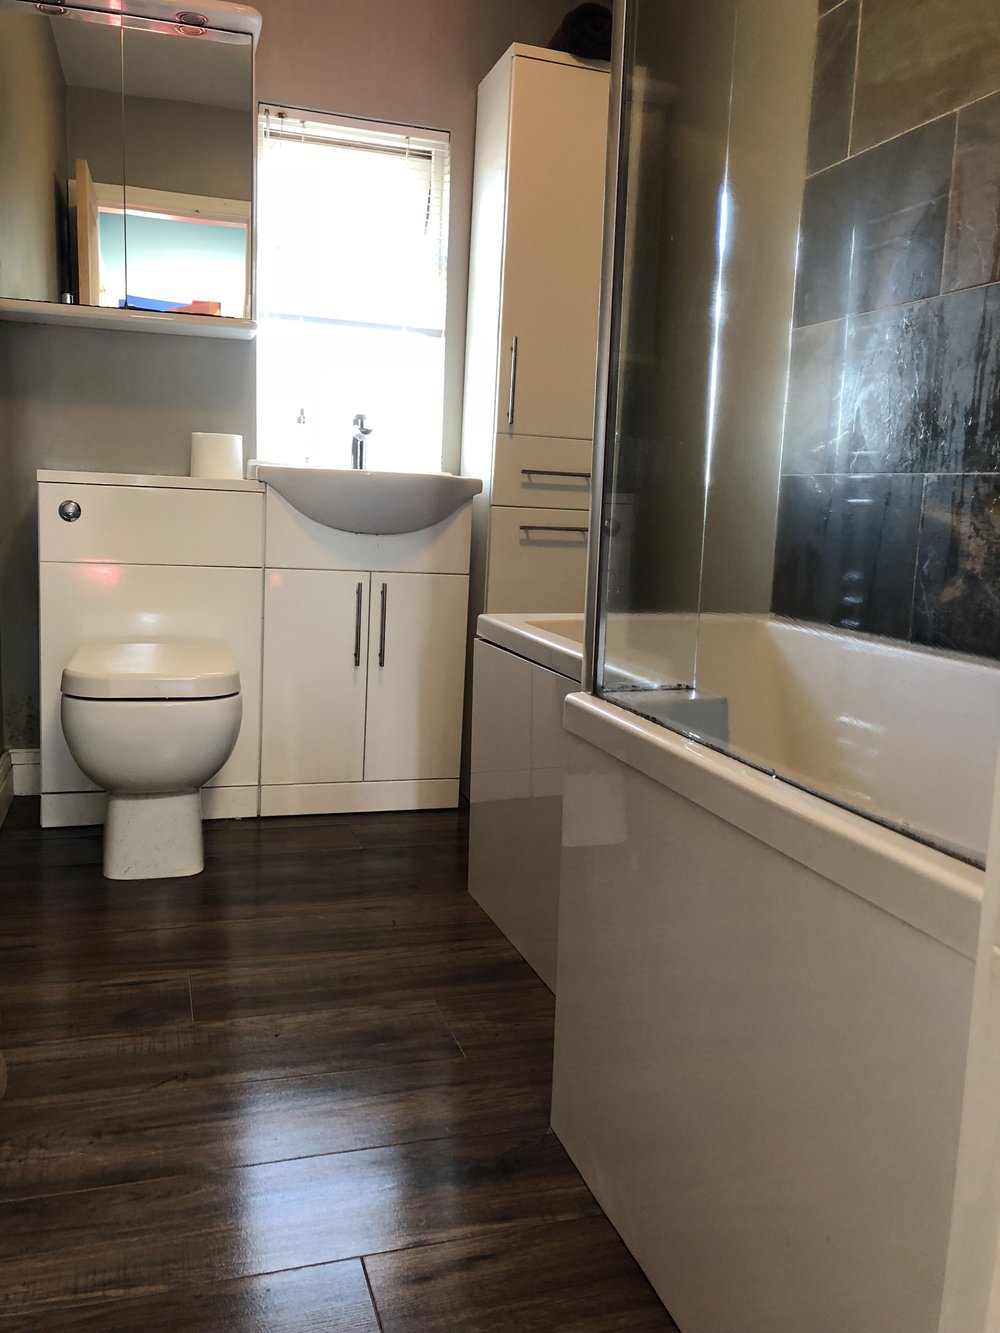 Bathroom with white bathroom suite and dark flooring